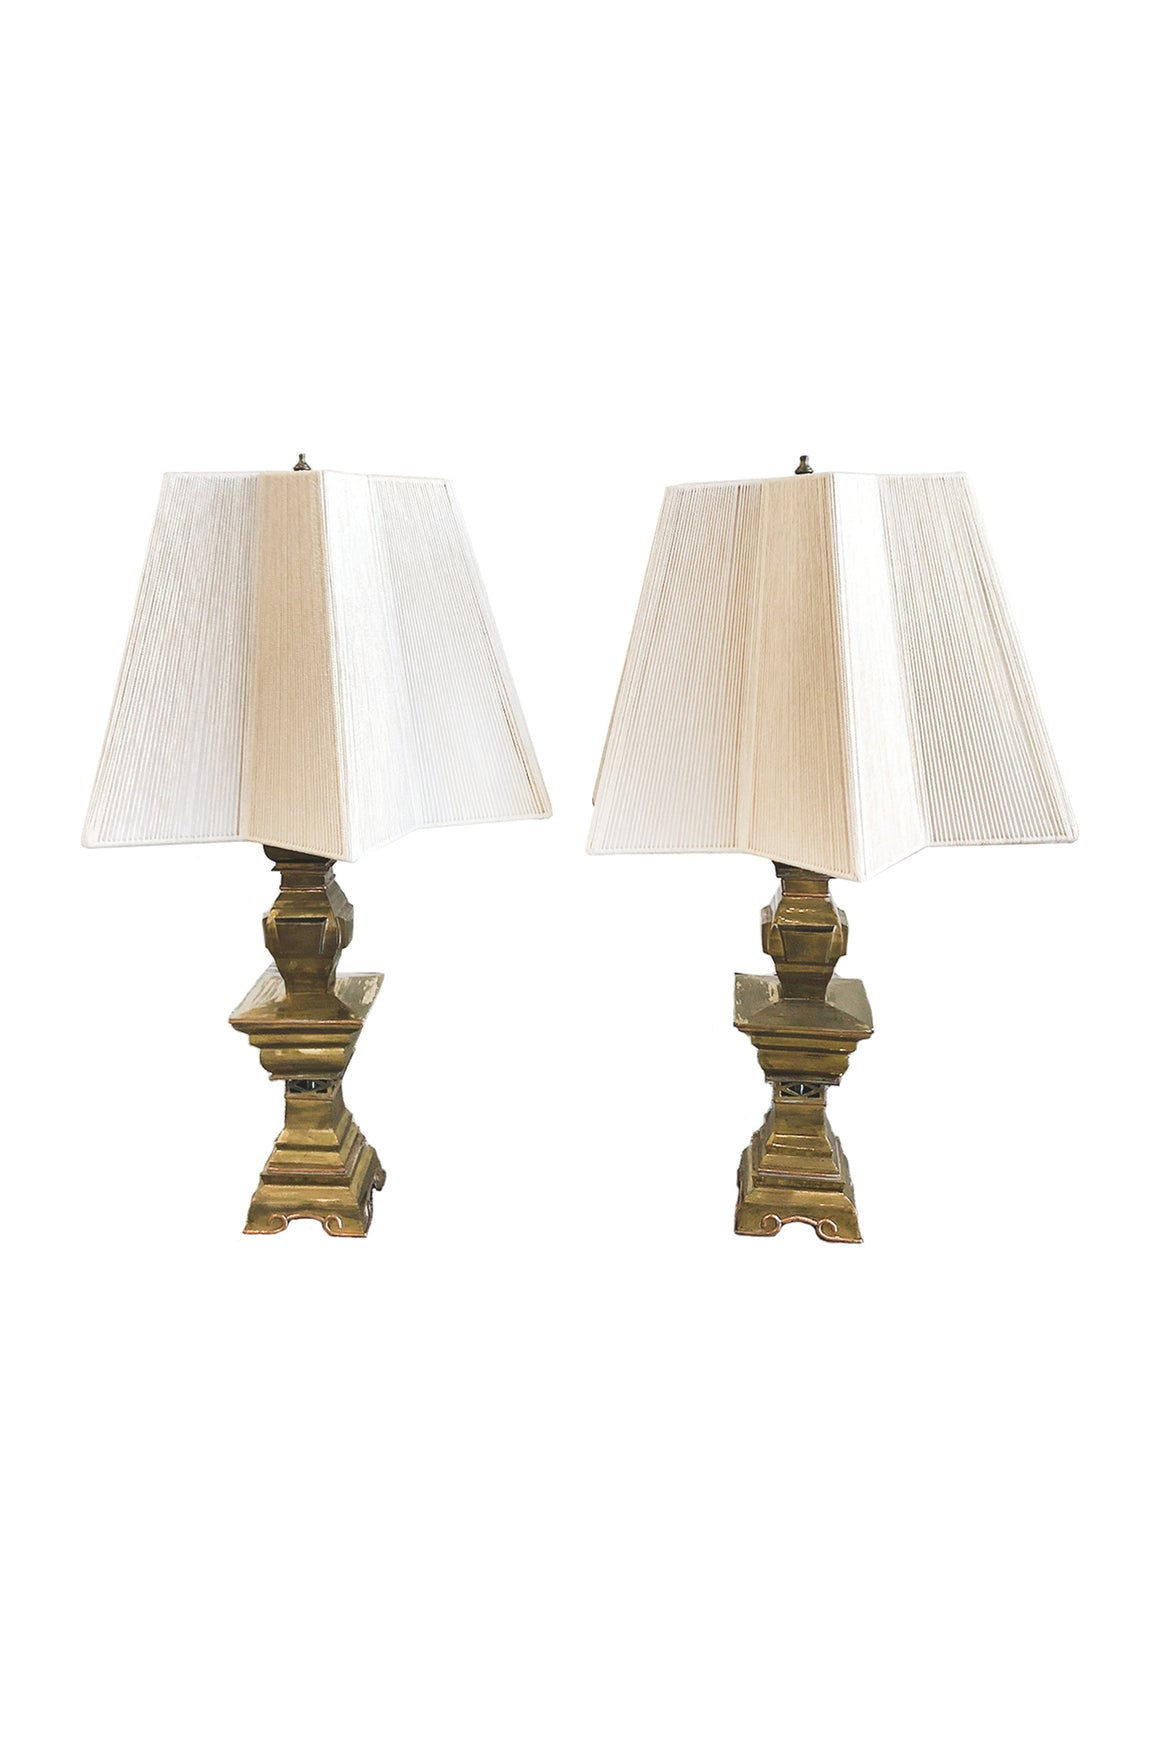 Pair of Mid-20th Century Brass Candlestick Lamps